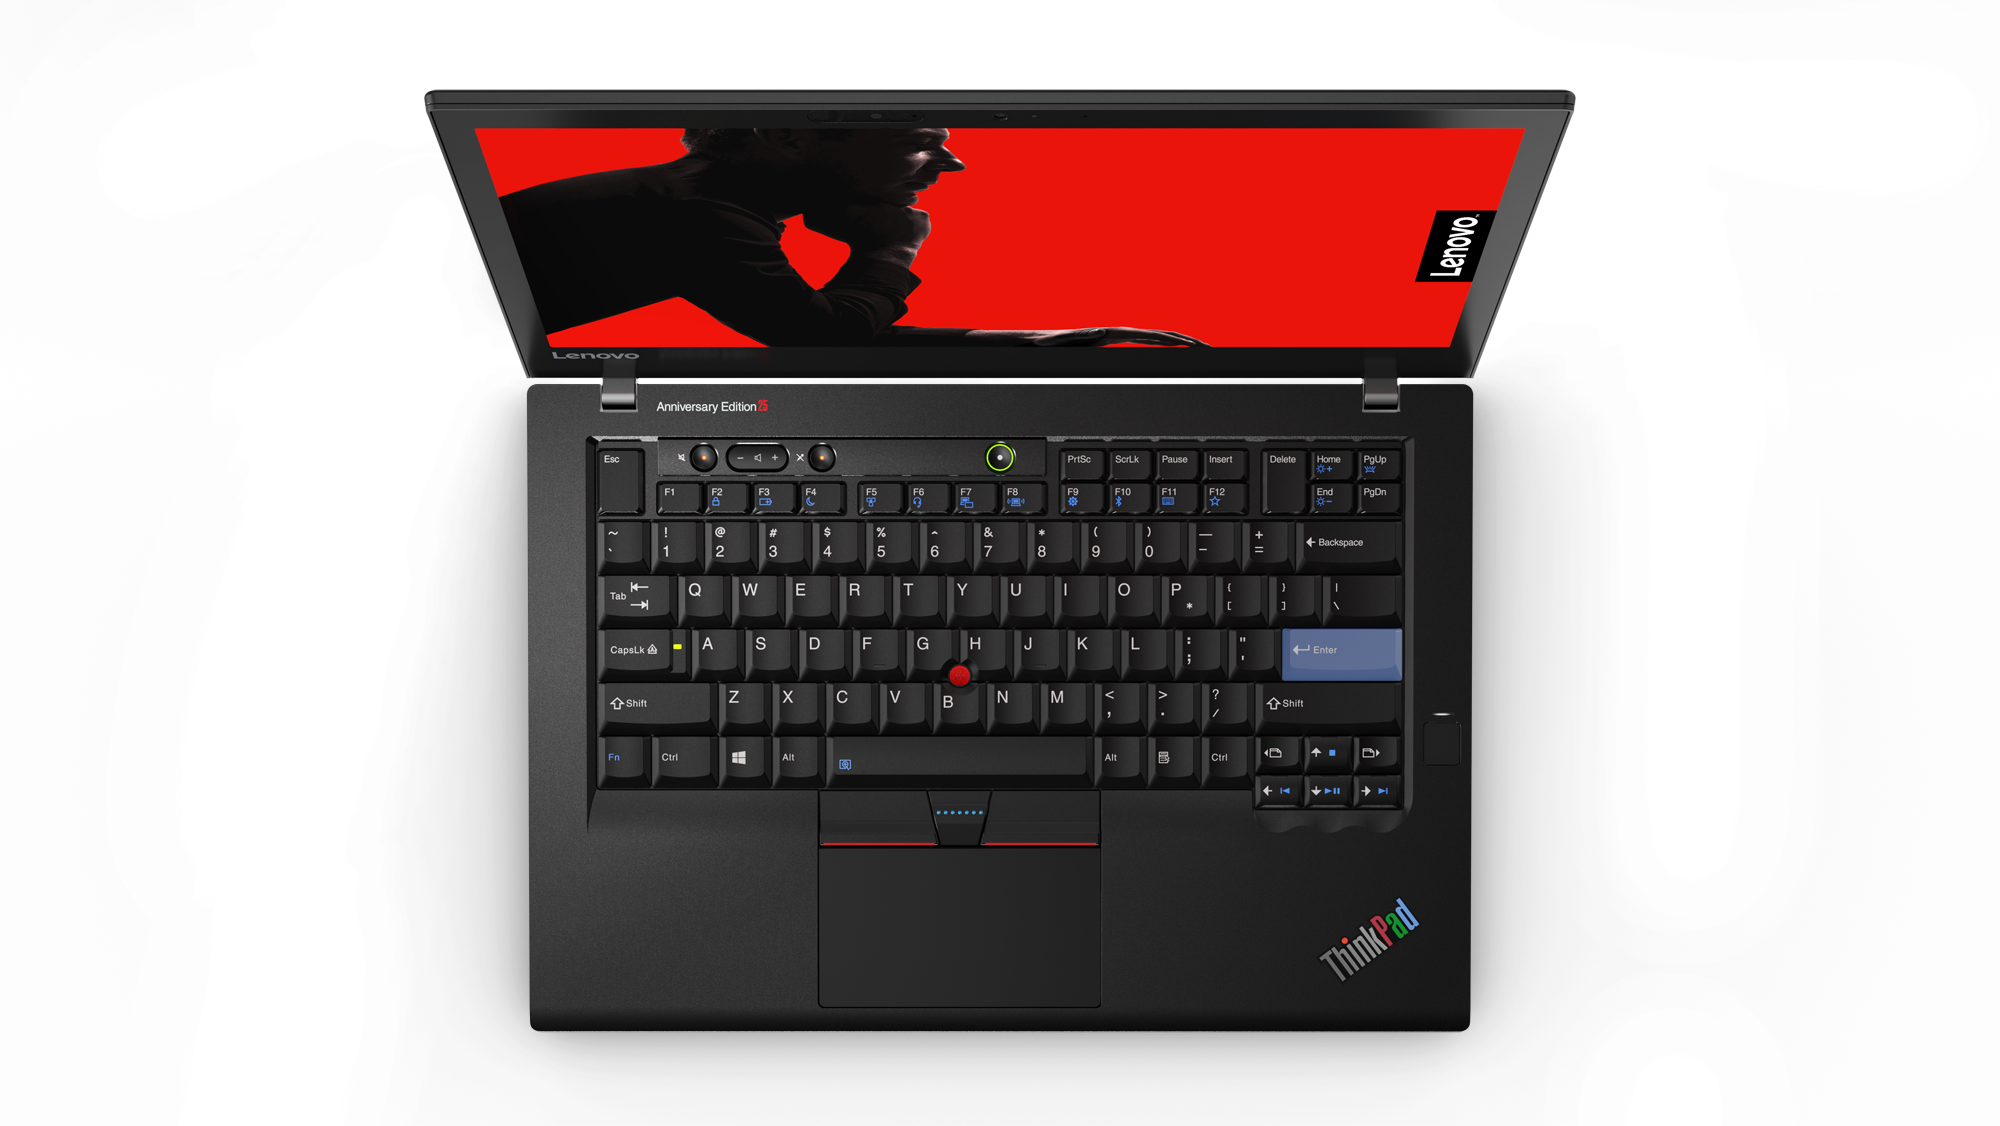 Lenovo officially announces the ThinkPad Anniversary Edition 25 with